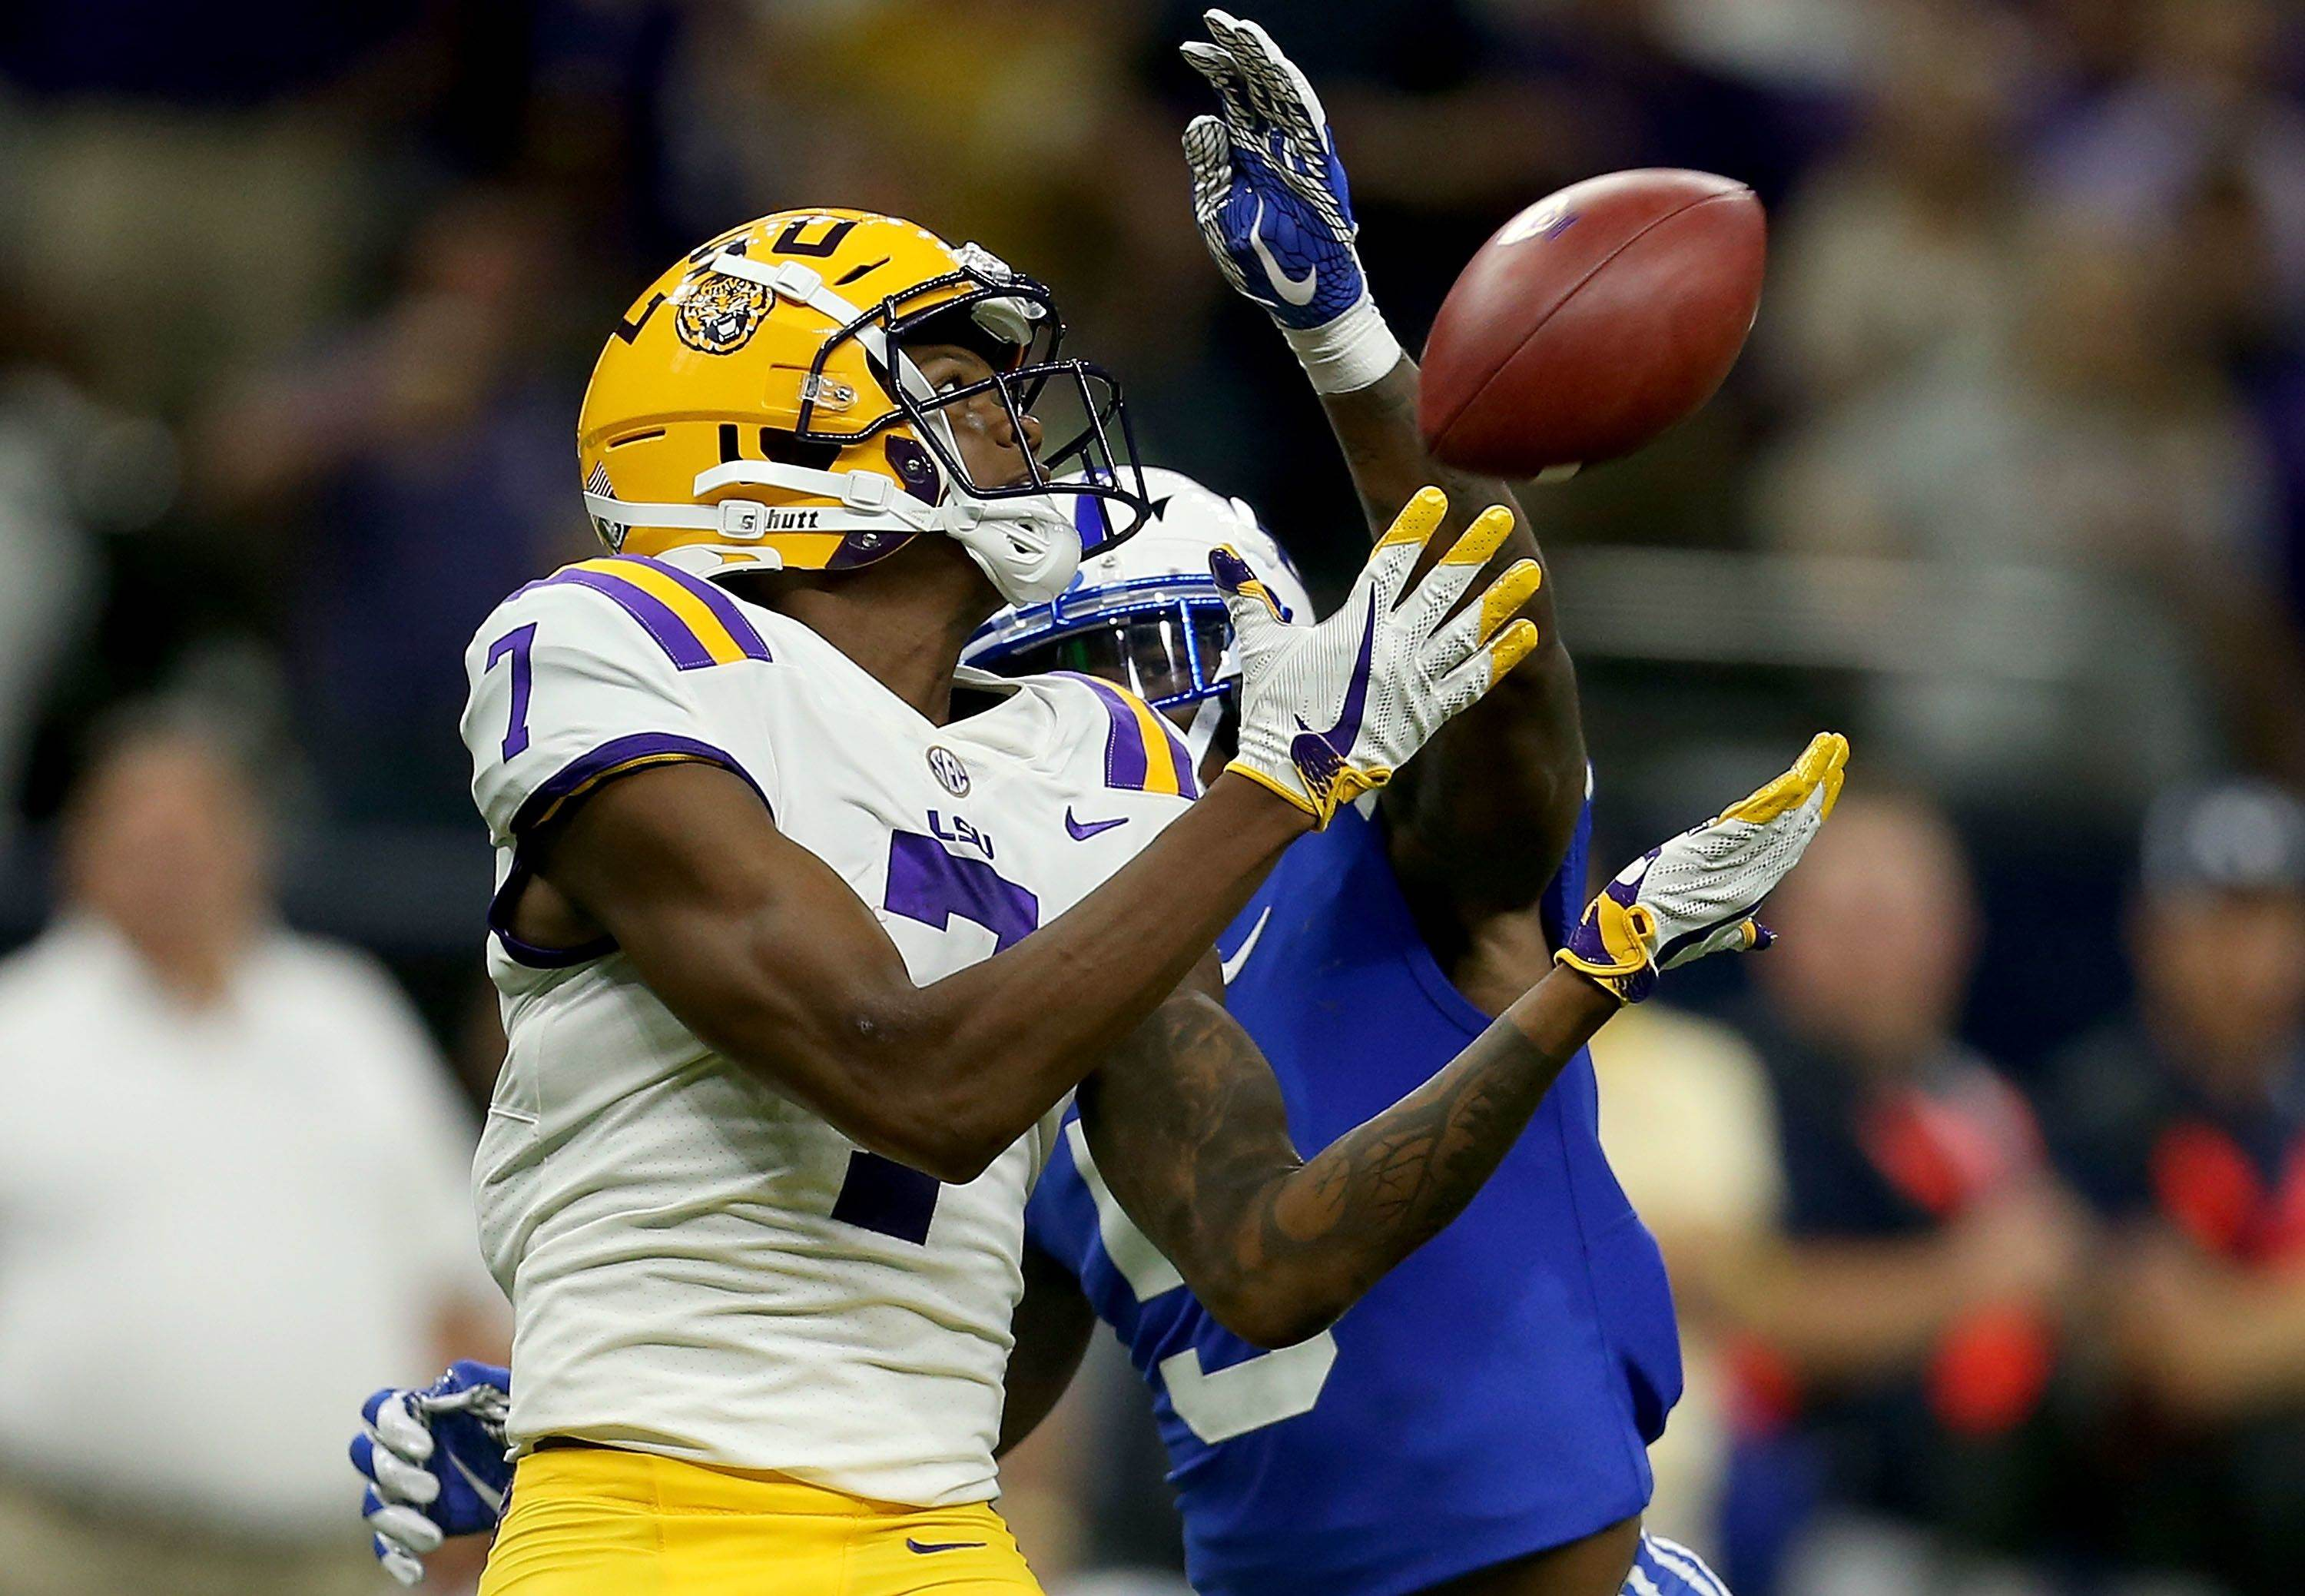 2018 NFL Draft: LSU WR DJ Chark Visits Cowboys